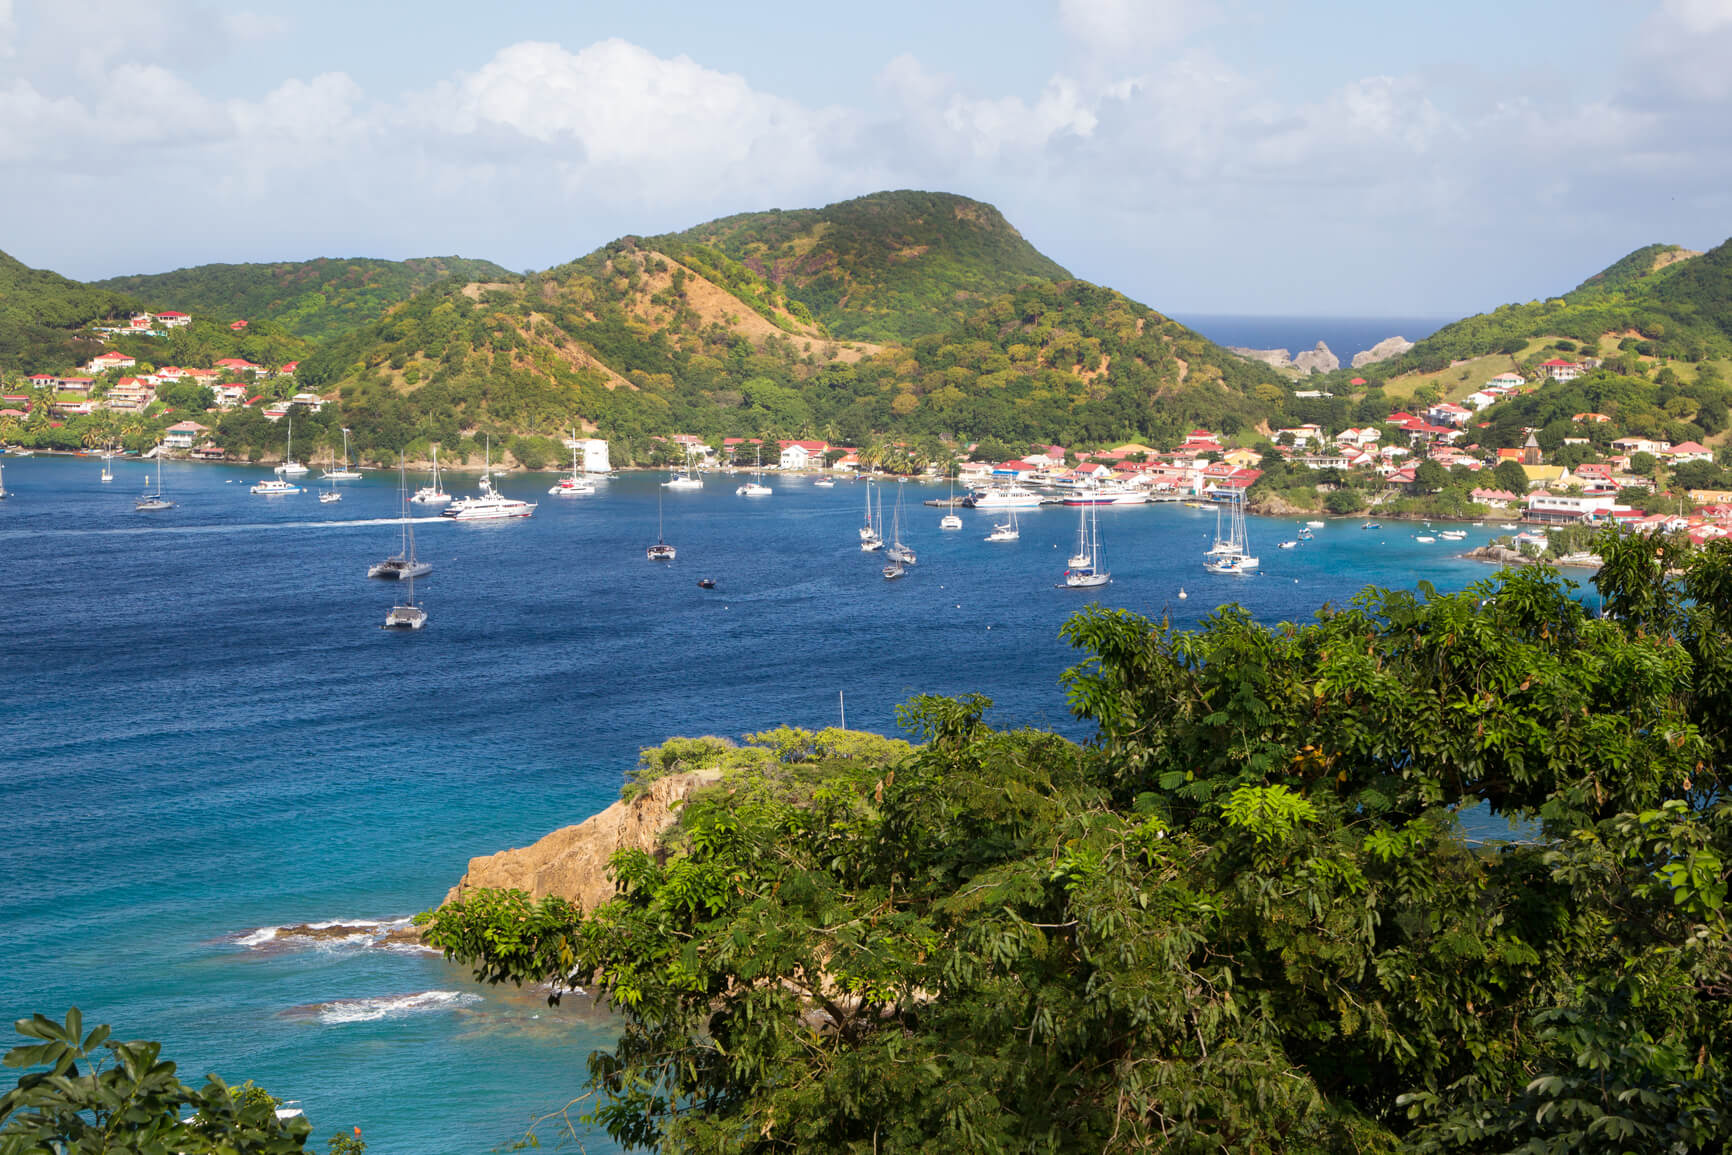 Non-stop from Paris, France to Martinique or Guadeloupe for only €350 roundtrip